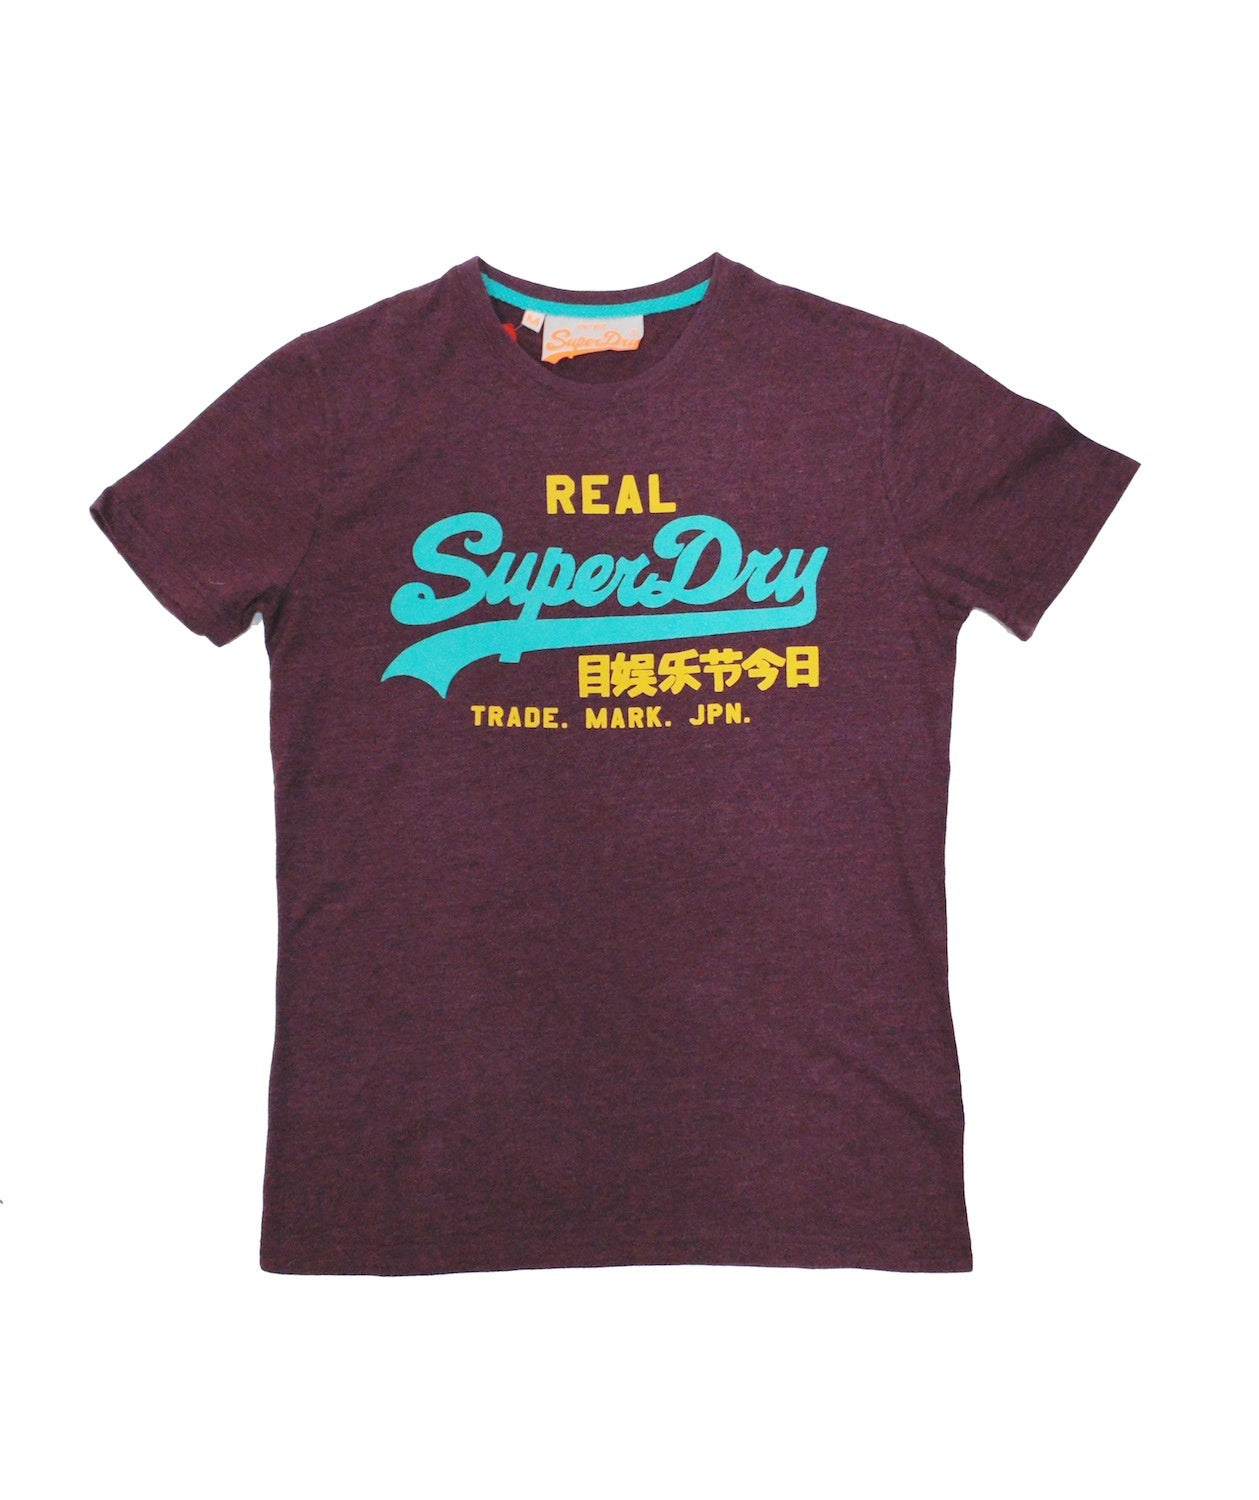 Super Dry Port Marl T-shirt Burgundy Teal Yellow